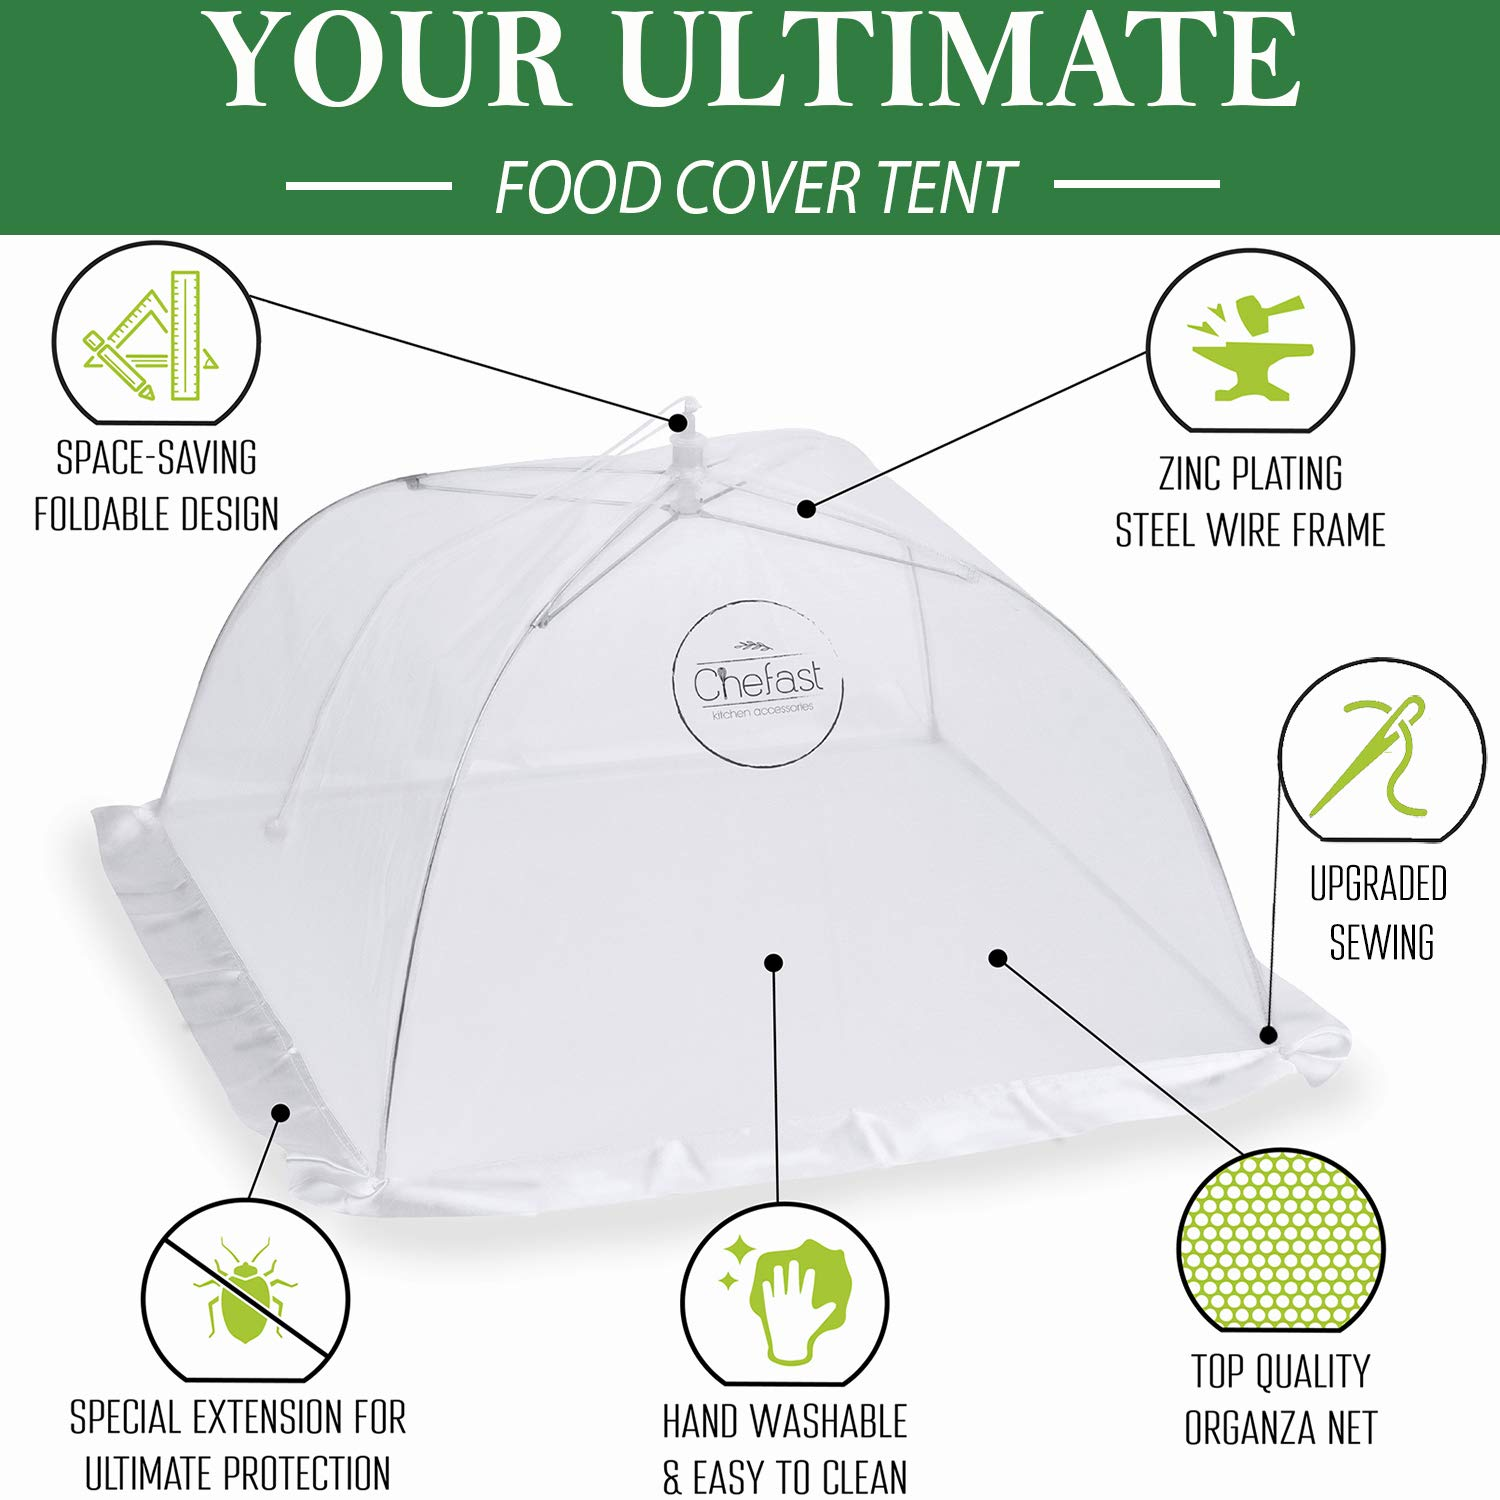 Chefast Food Cover Tents (5 Pack) - Combo Set of Pop Up Mesh Covers in 3 Sizes and a Reusable Carry Bag - Umbrella Screens to Protect Your Food and Fruit from Flies and Bugs at Picnics, BBQ and More by Chefast (Image #4)